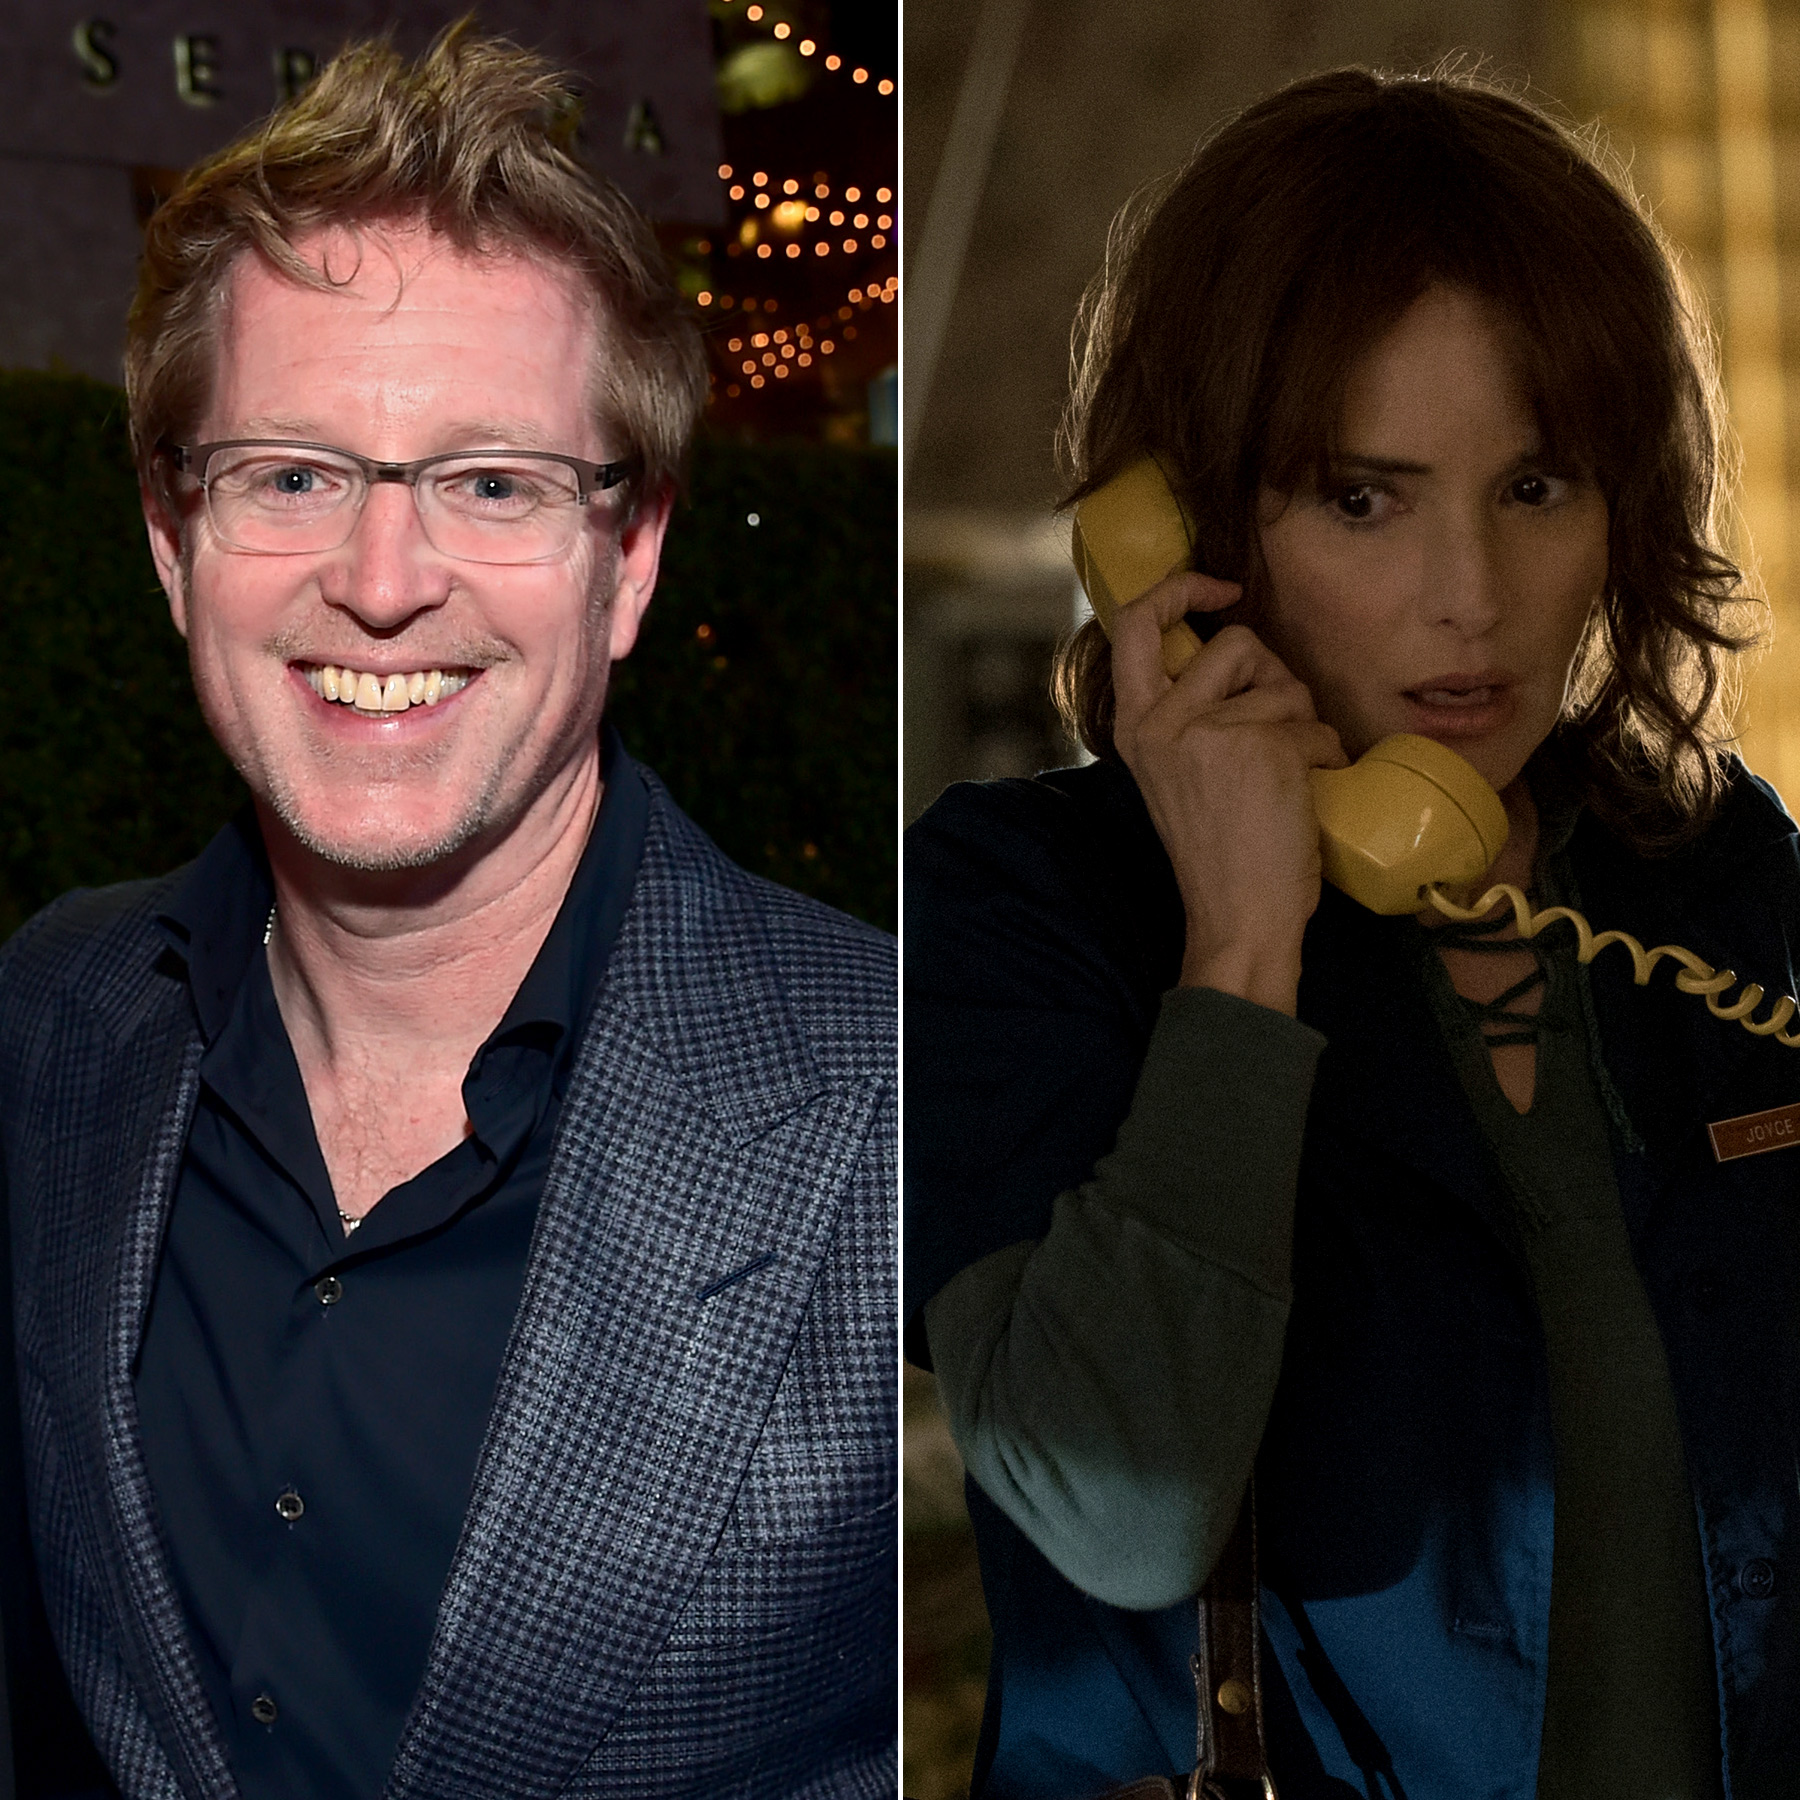 Andrew Stanton to direct 2 episodes of Stranger Things